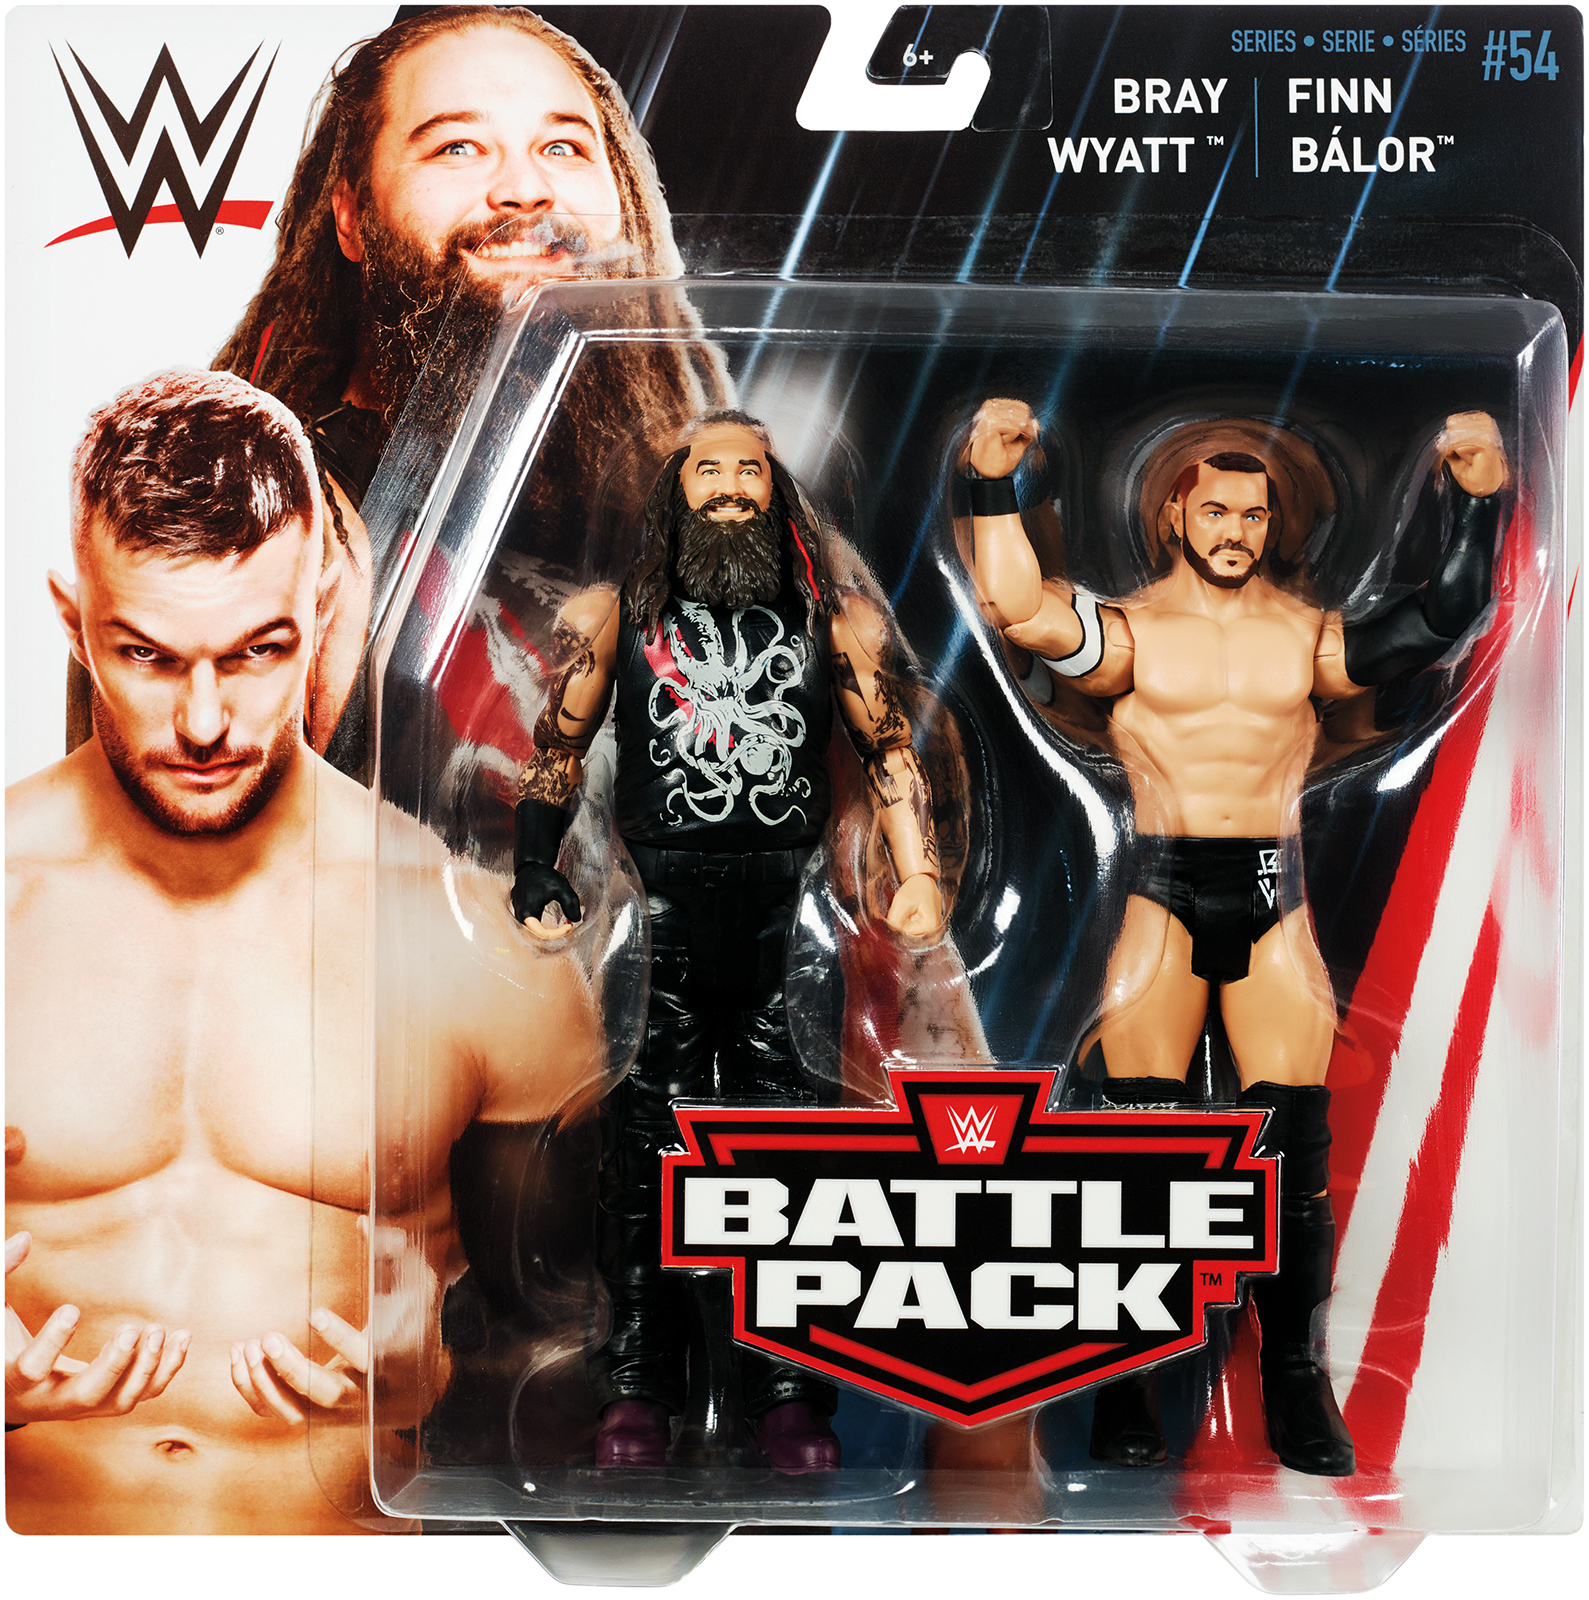 Finn Balor & Bray Wyatt - WWE Battle Packs 54 Toy Wrestling Action Figures